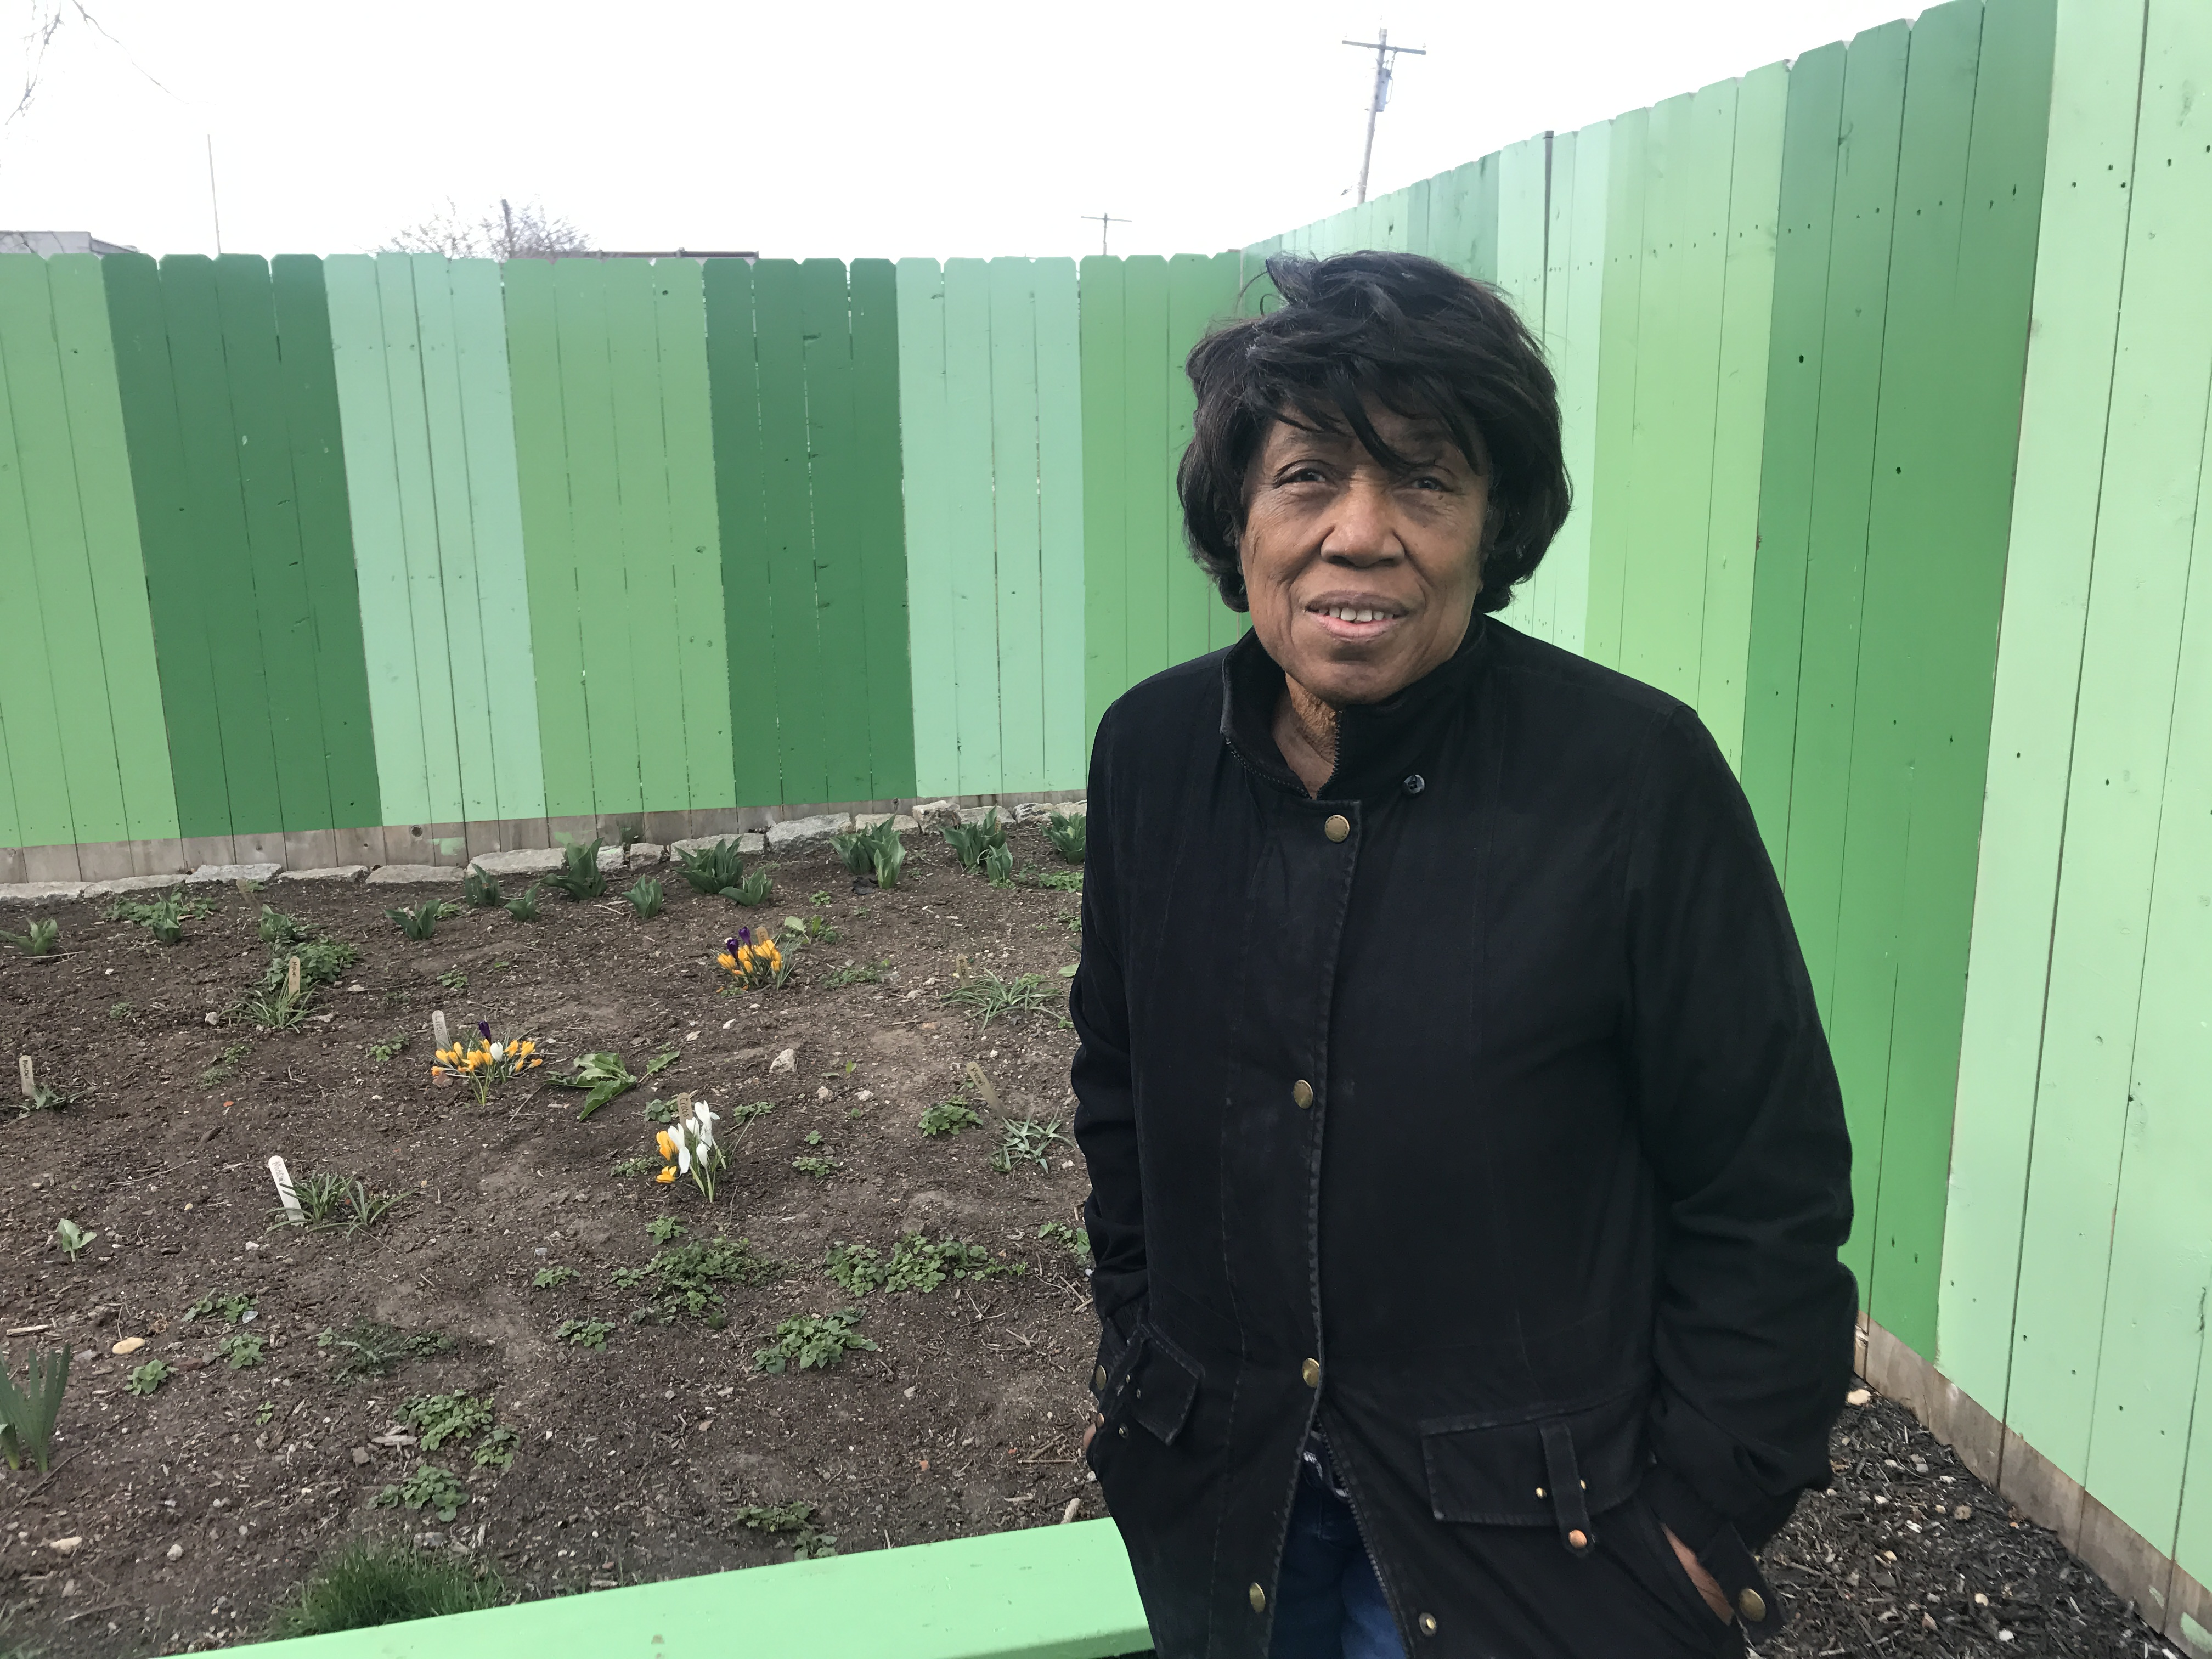 Elmira Smith in the community garden she and her neighbors created in Kensington. It is now threatened by an impending sheriff´s sale.